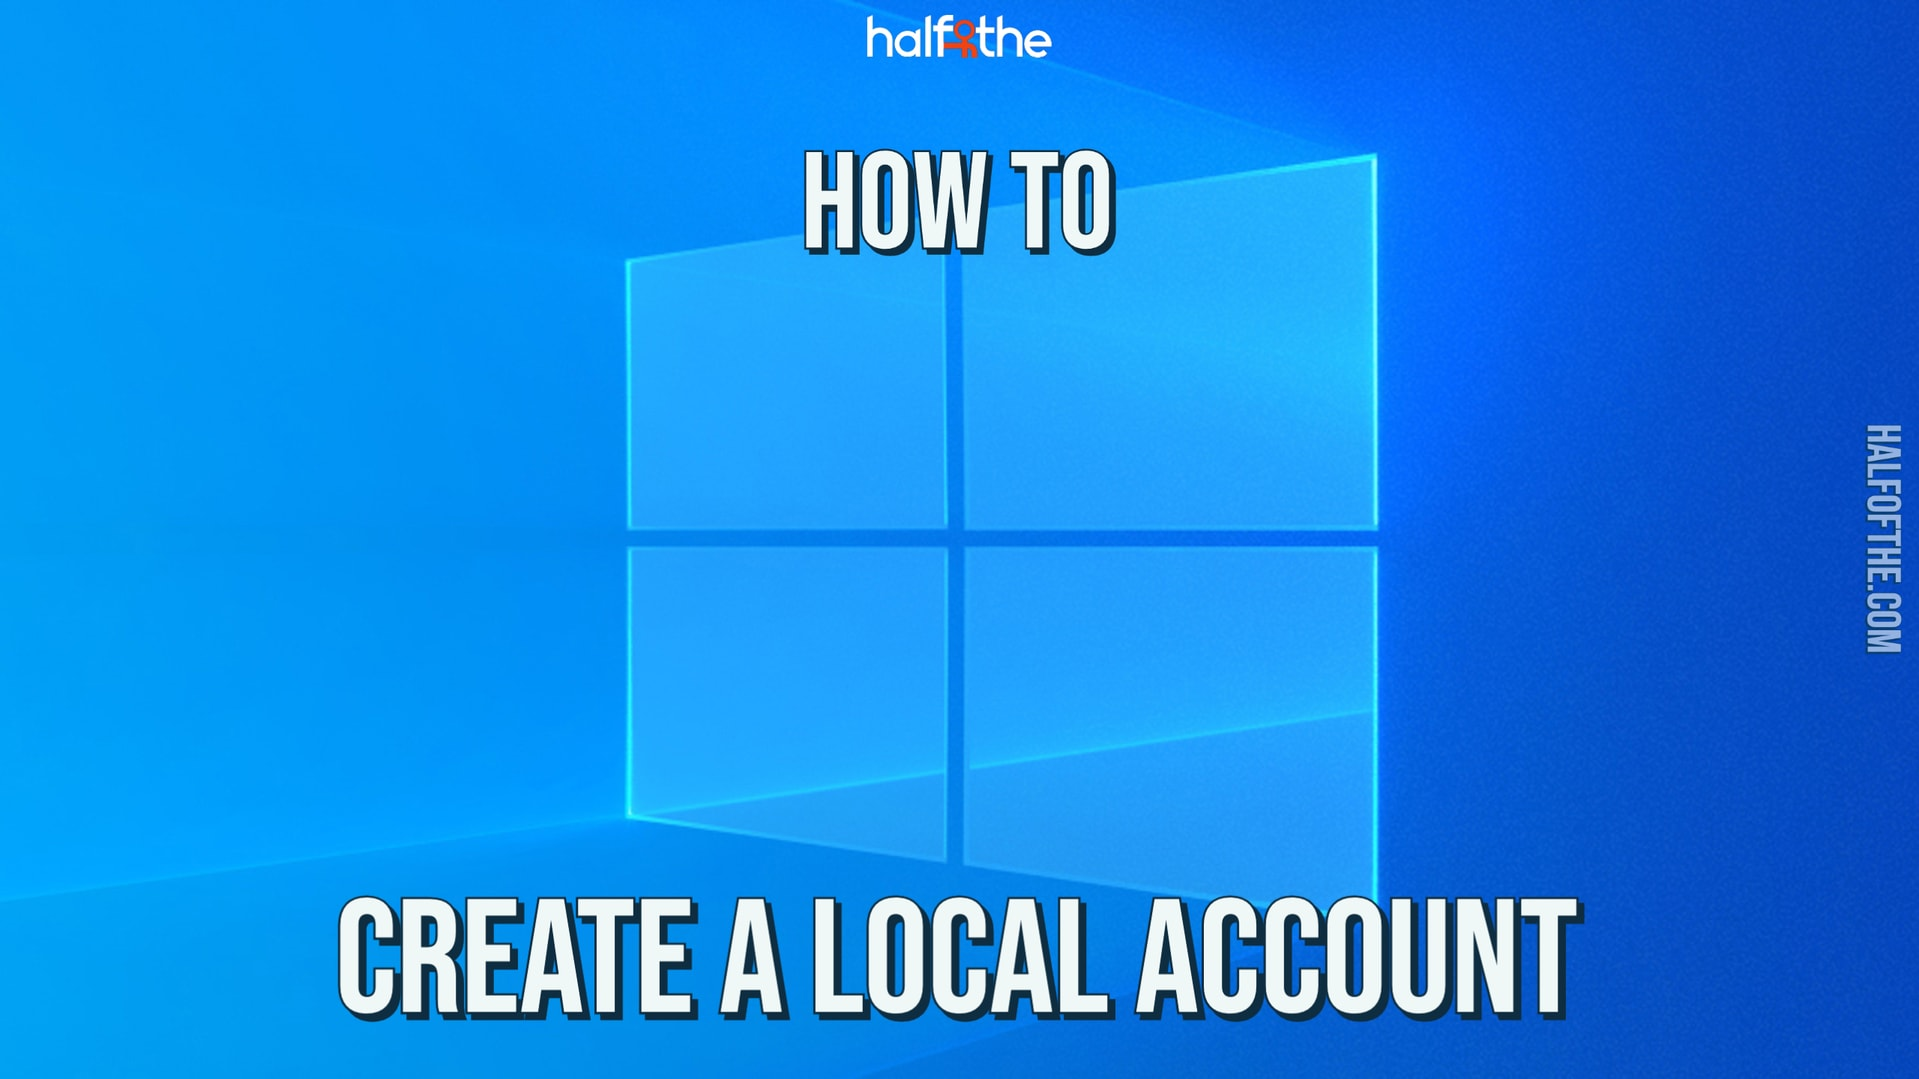 How to create a local account in Windows 10? Easy steps